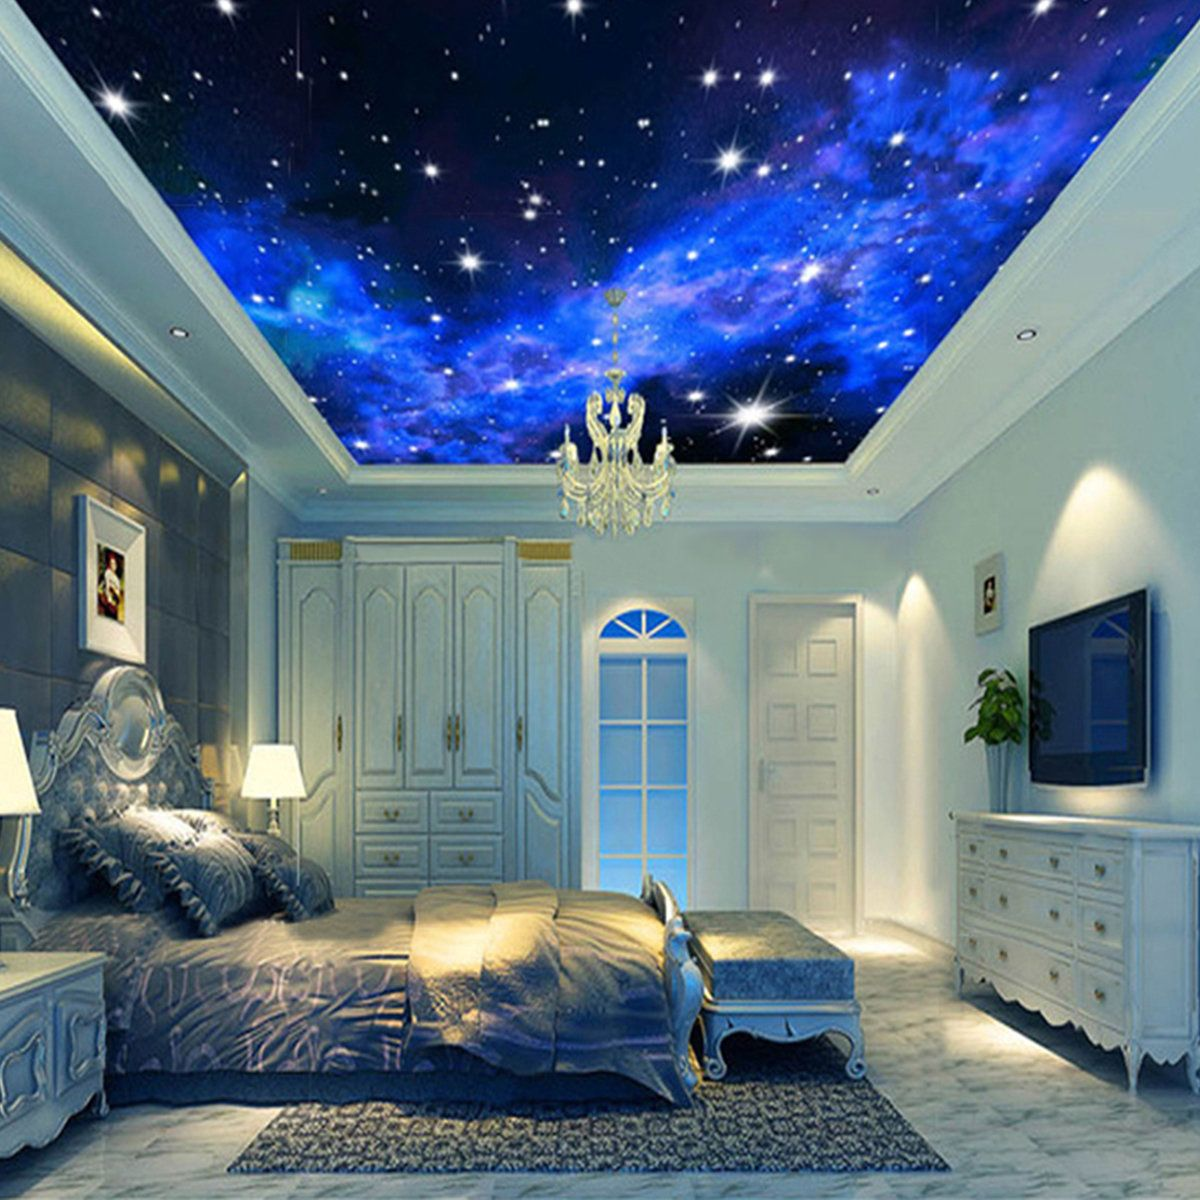 3d wallpaper mural night clouds star sky wall paper for Cloud wallpaper mural